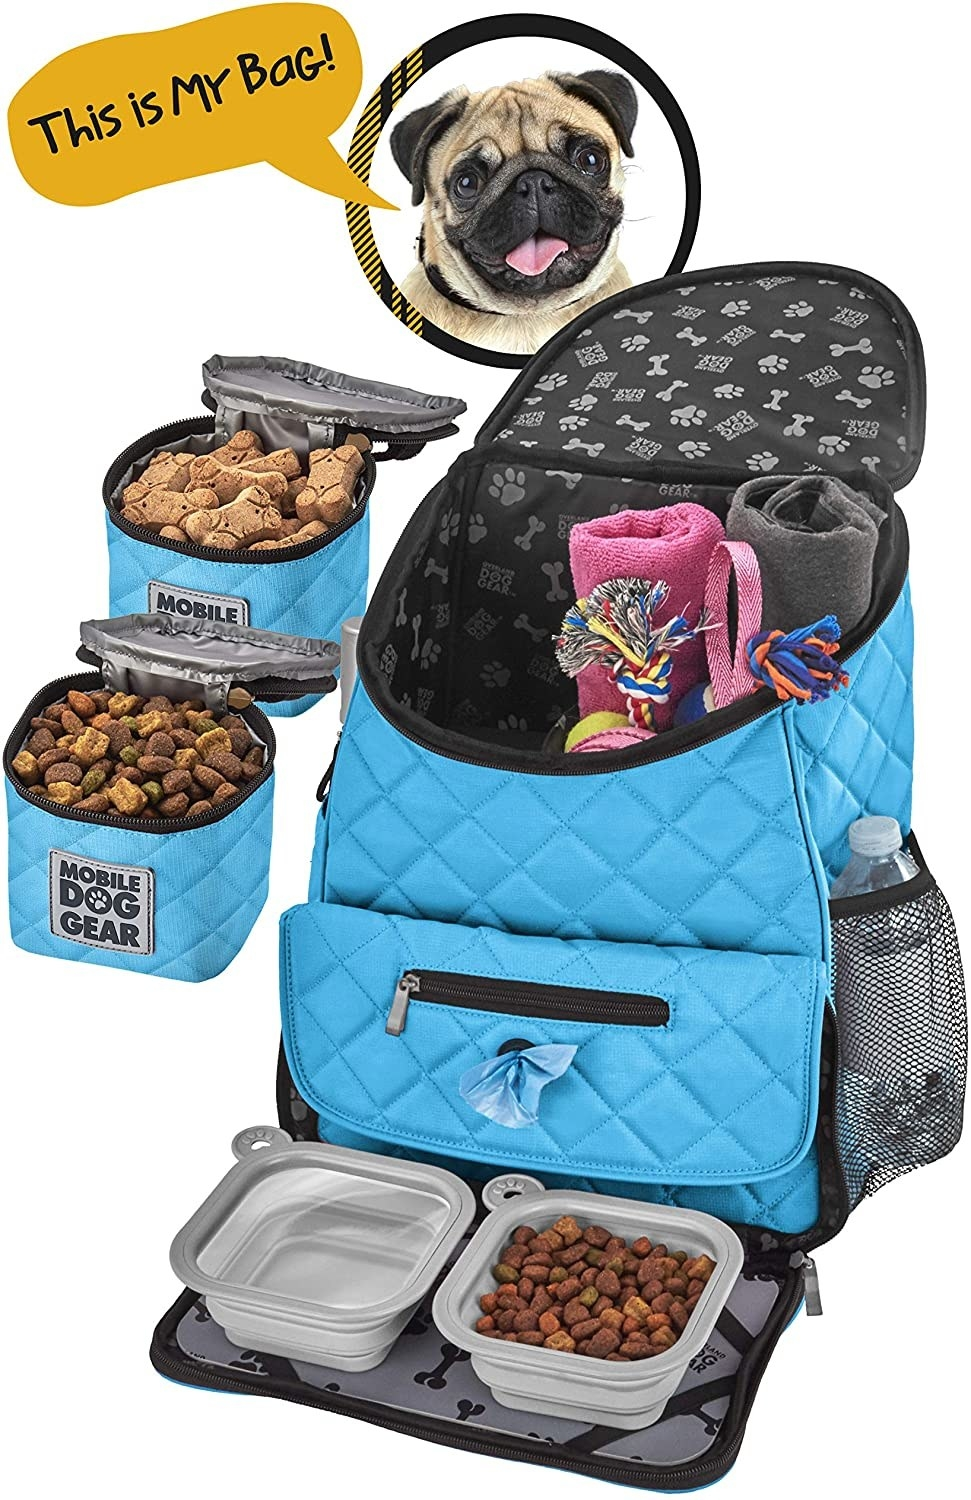 The blue backpack, food carriers, placemat, and silicone bowls